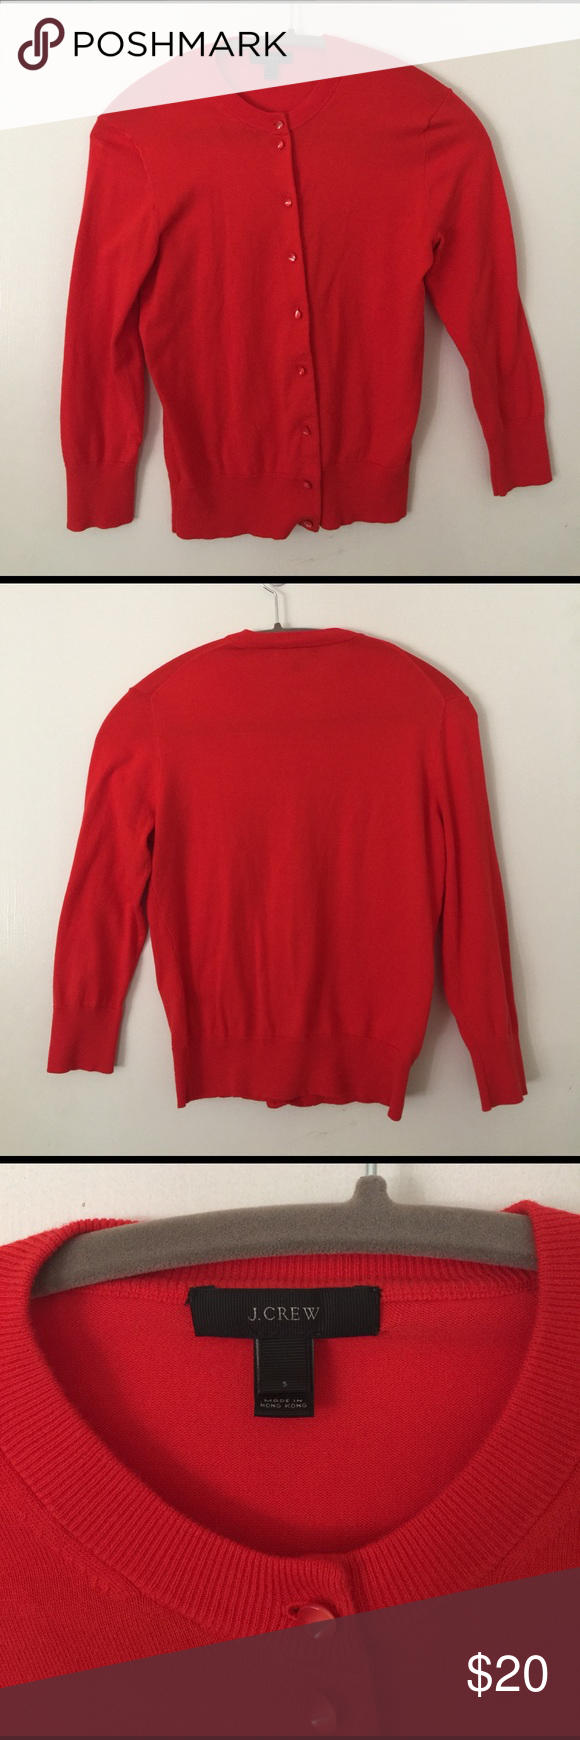 J.Crew Red Cardigan J.Crew red cardigan, soft, excellent condition, size S. J. Crew Tops